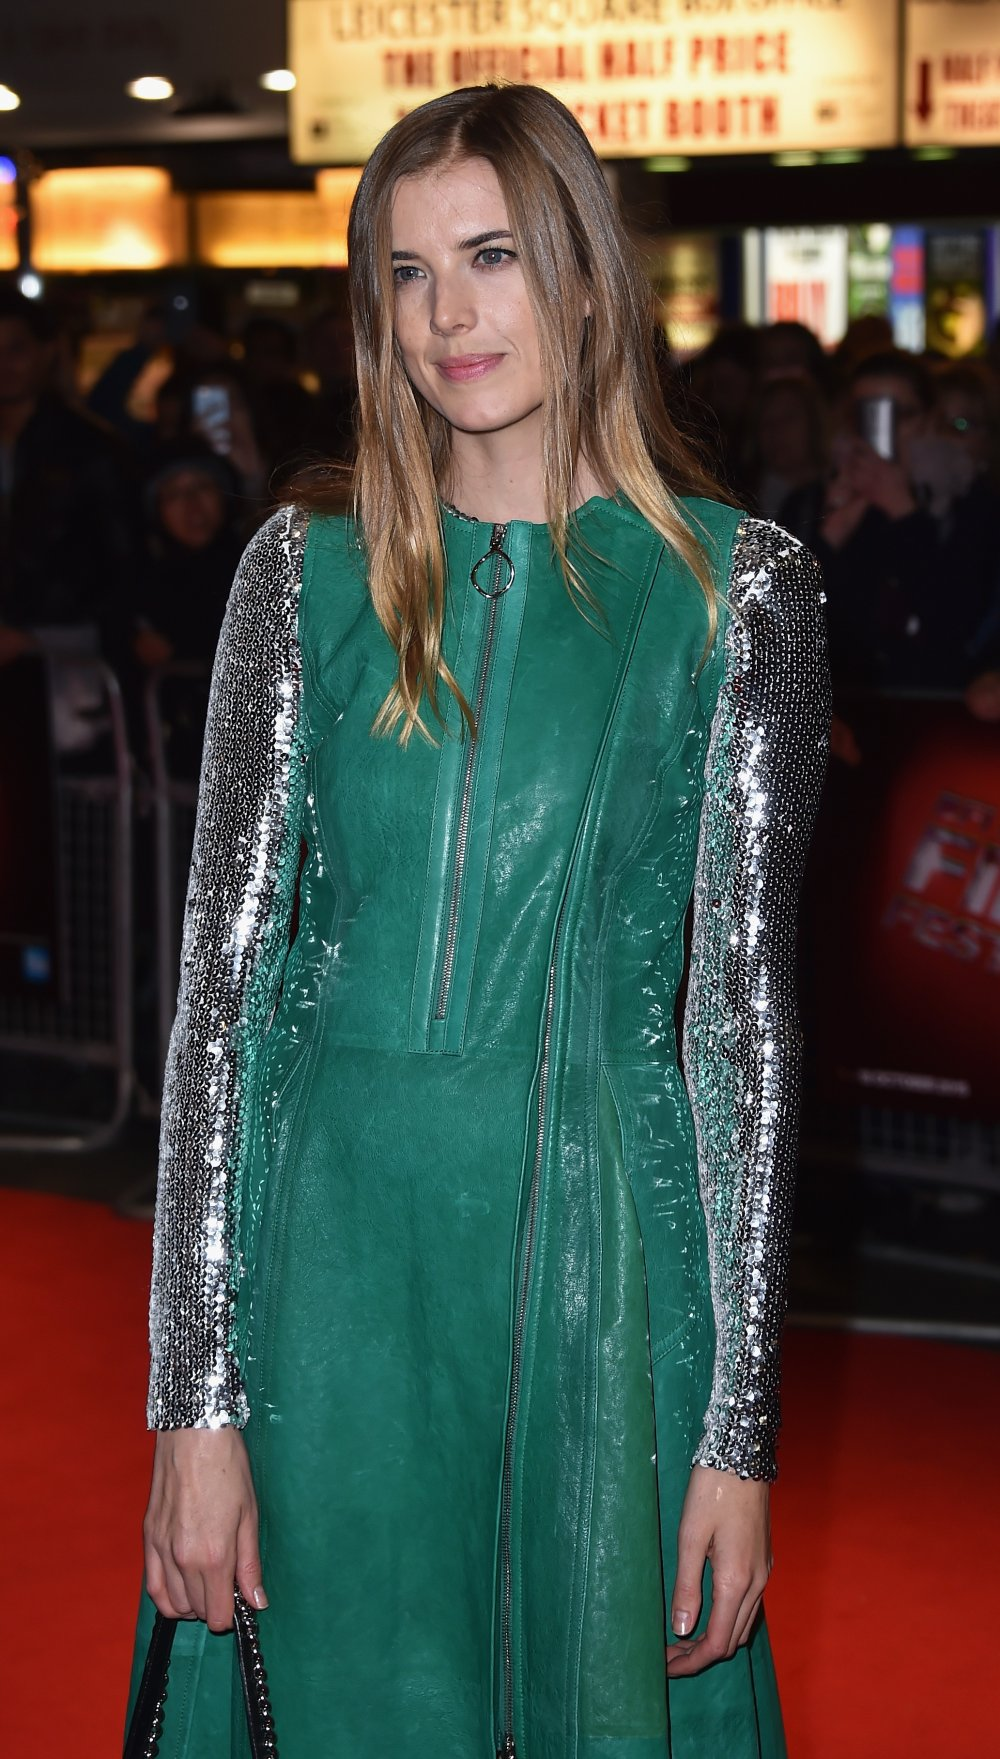 Agyness Deyn at the Sunset Song premiere